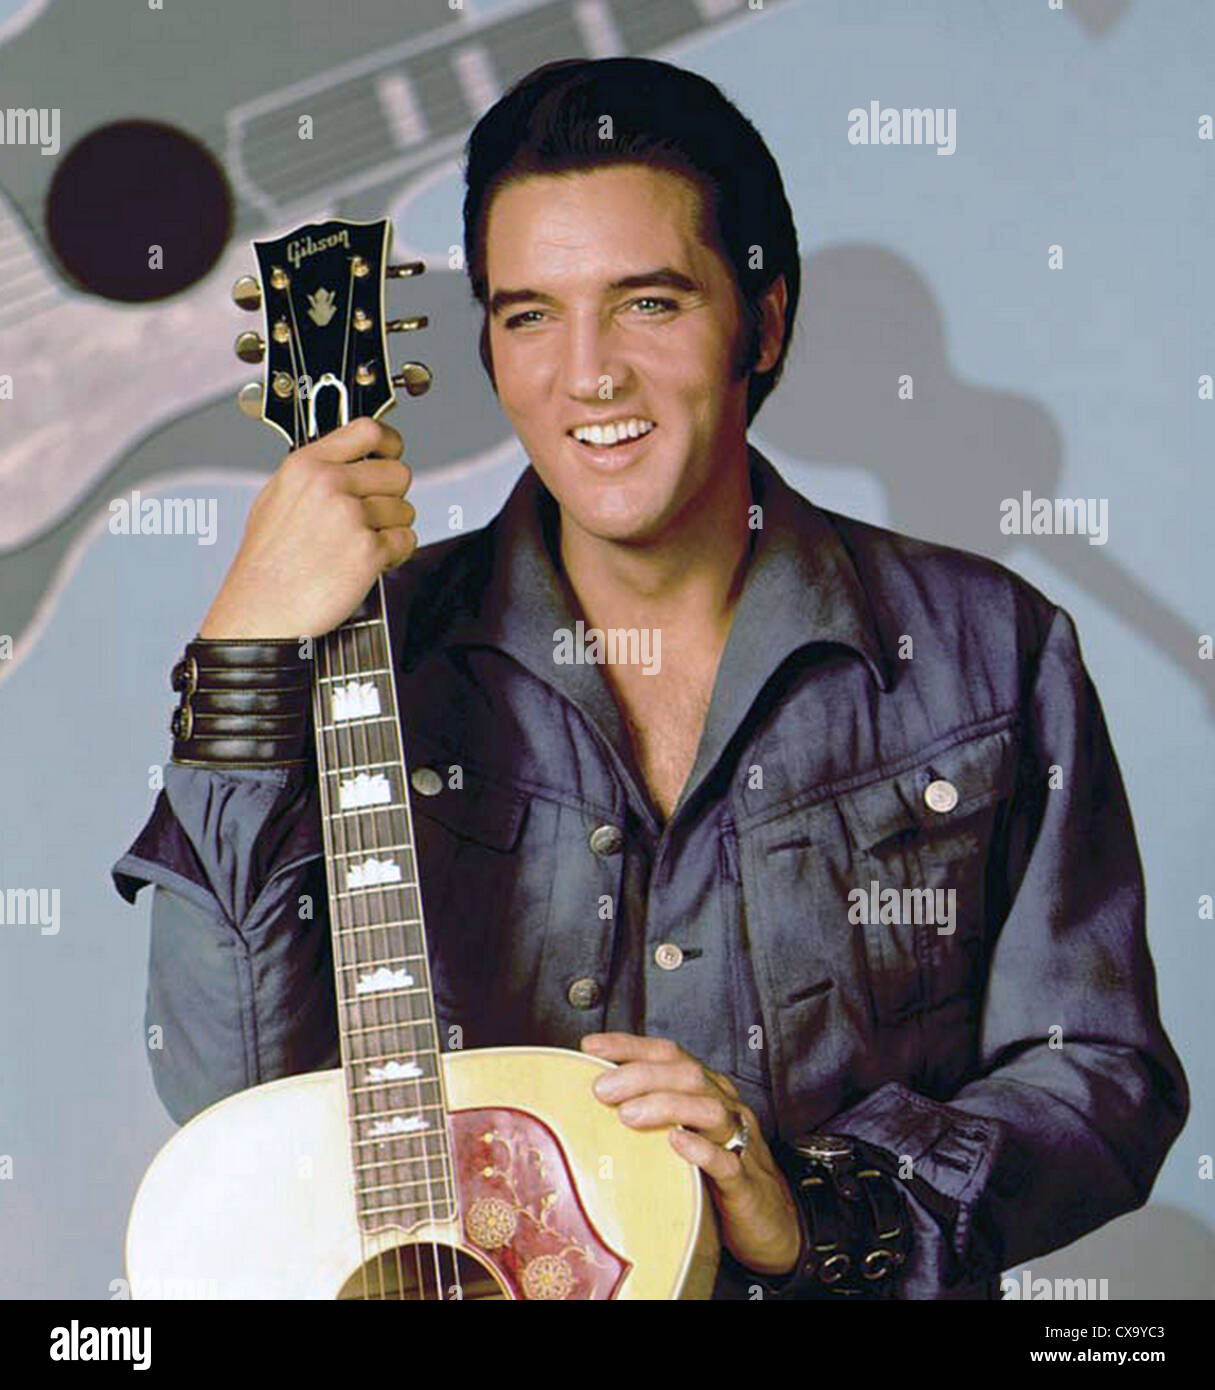 elvis presley 1935 1977 with gibson acoustic guitar about 1966 stock